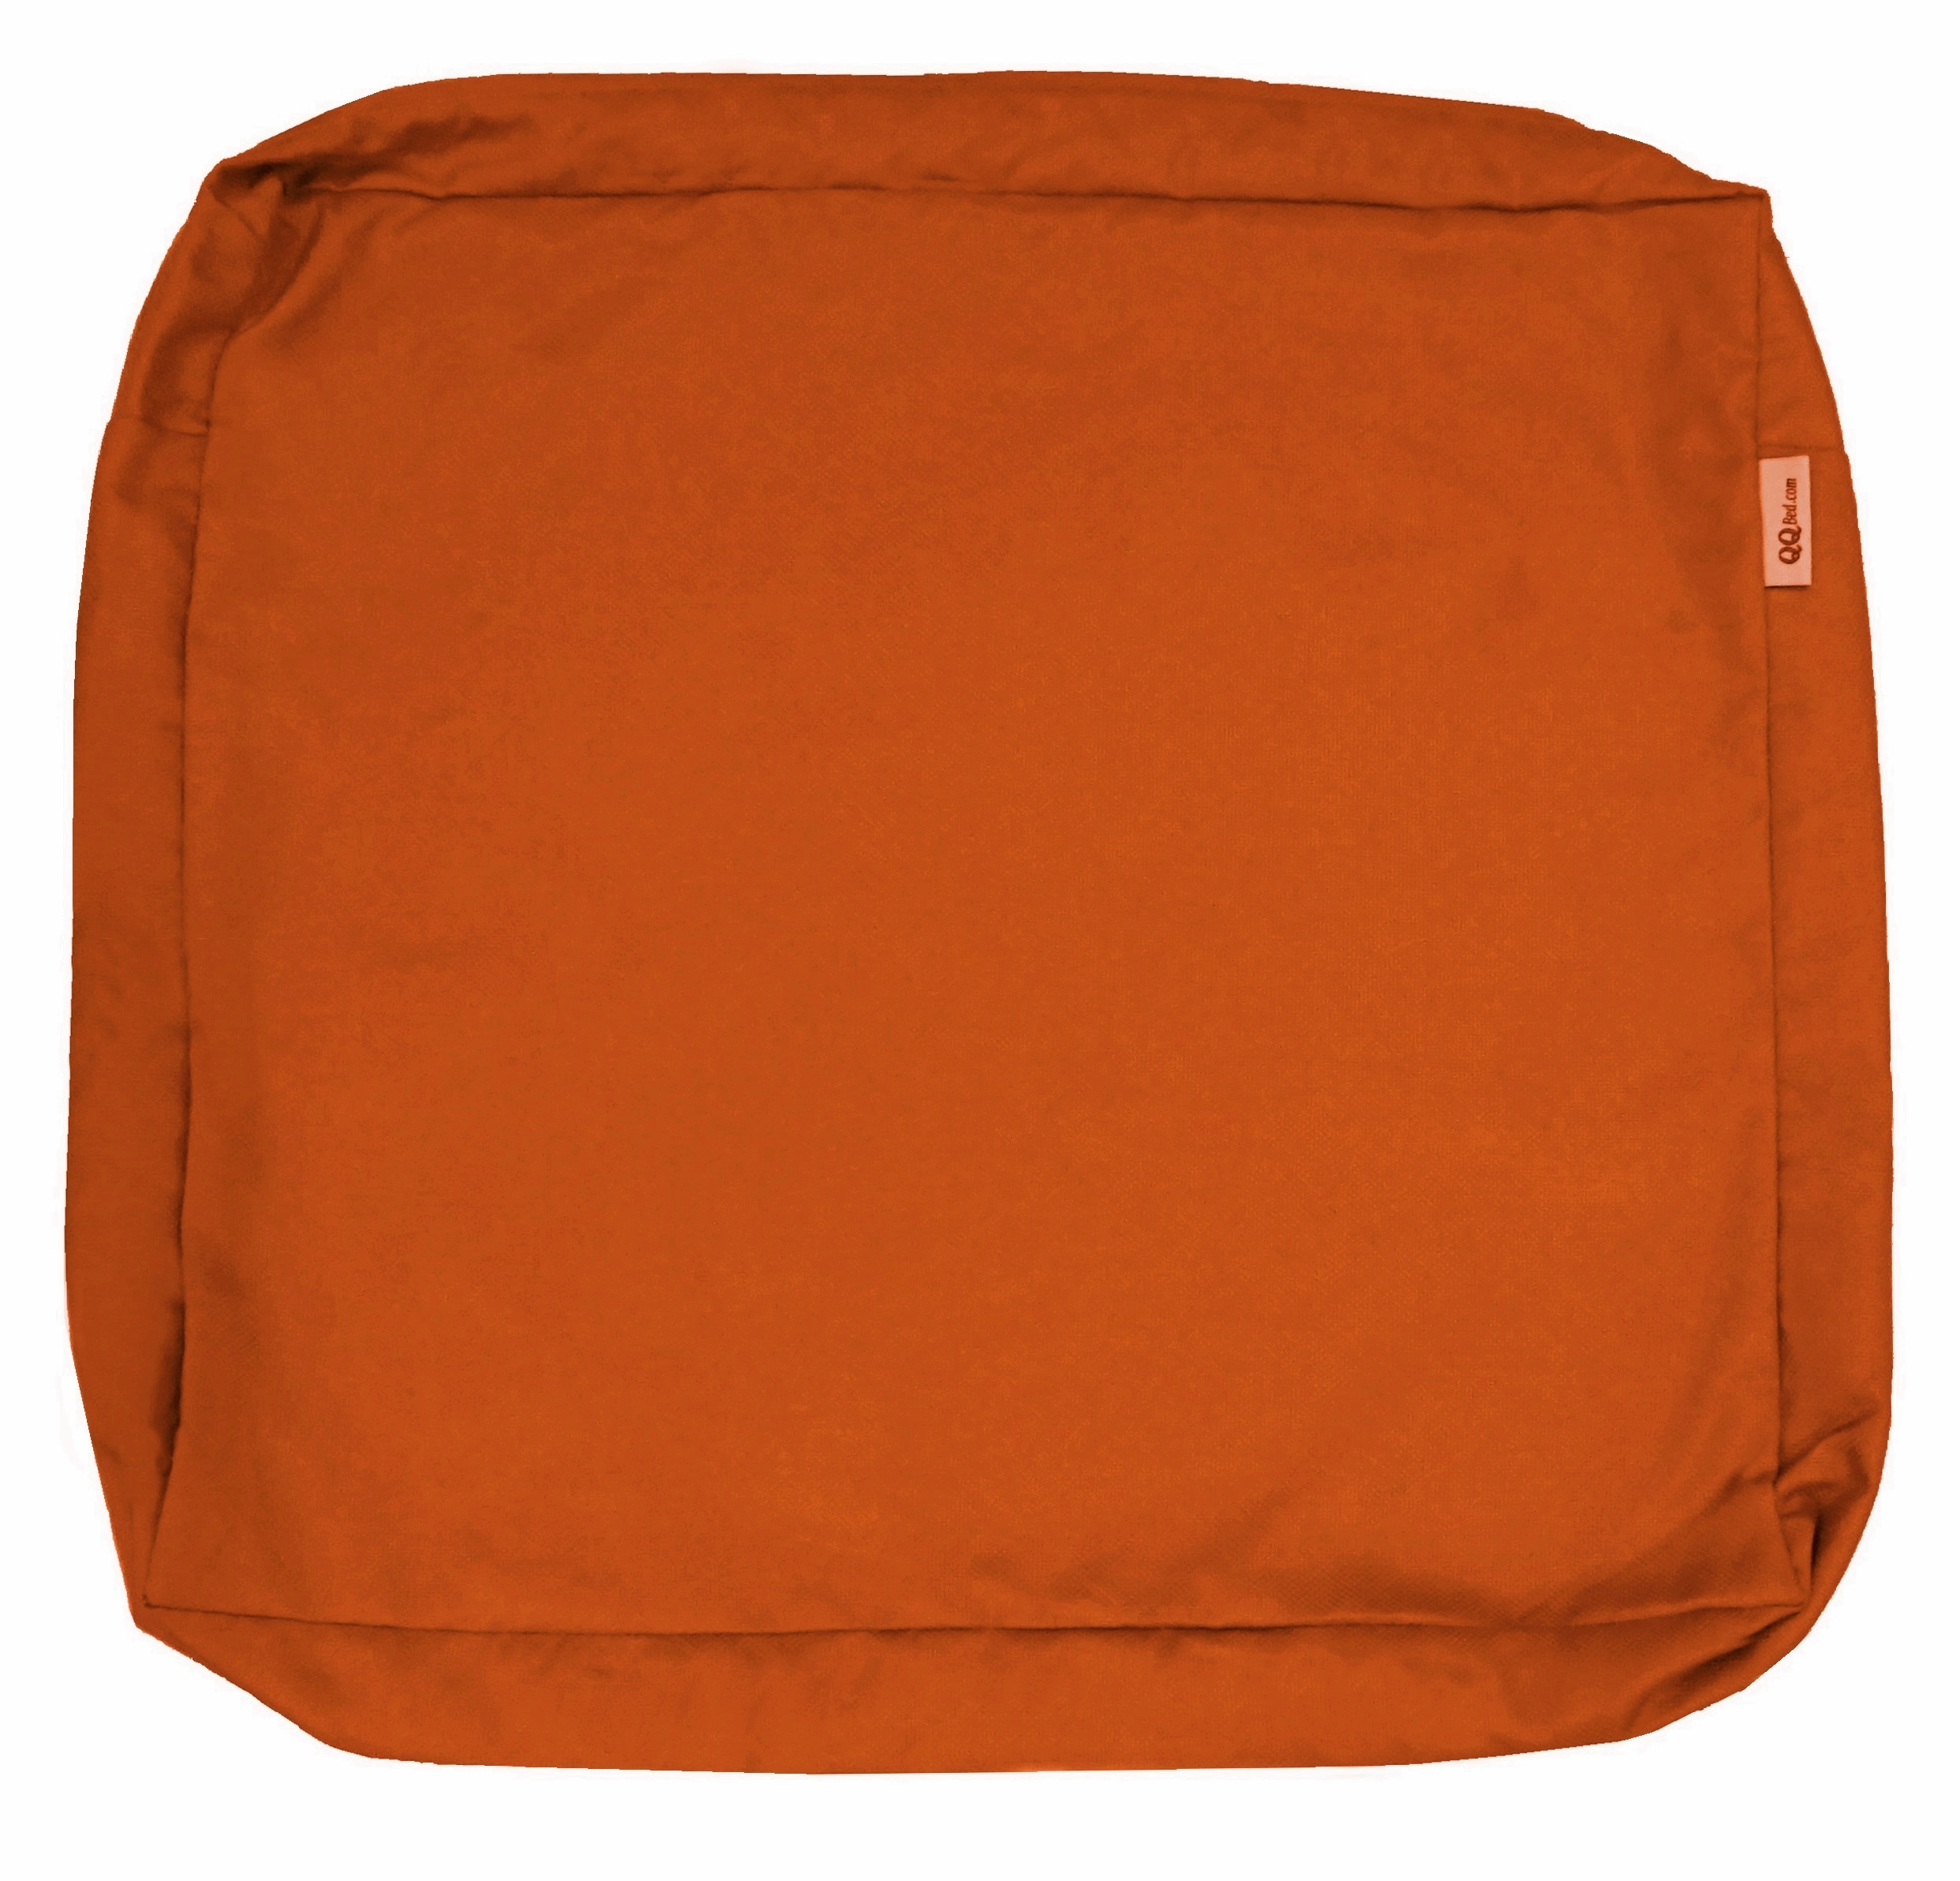 waterproof outdoor seat chair patio cushion cover duvet case 24x22x4 rust color